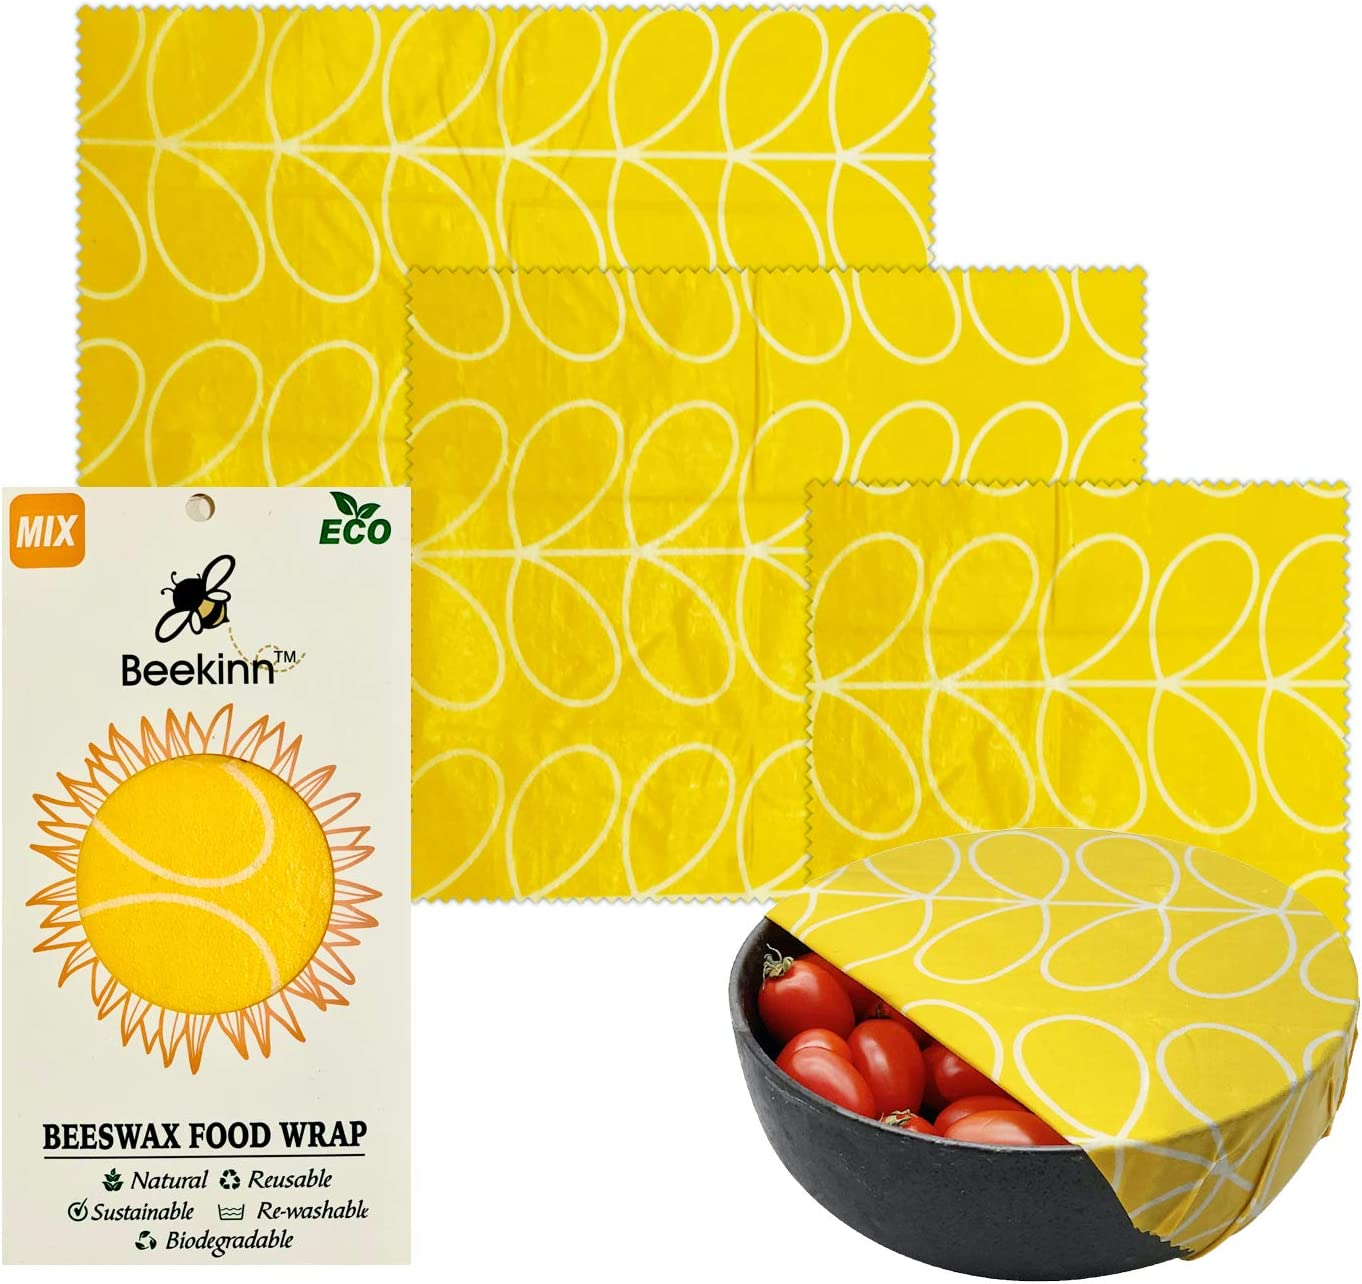 Beekinn Beeswax Food wrap - 3 pack, organic wraps-natural & eco friendly,100% organic cotton, alternative to plastic, Reusable food Wraps, perfect Food Storage-Set of 3 Sizes-S, M, L (yellow abstract)